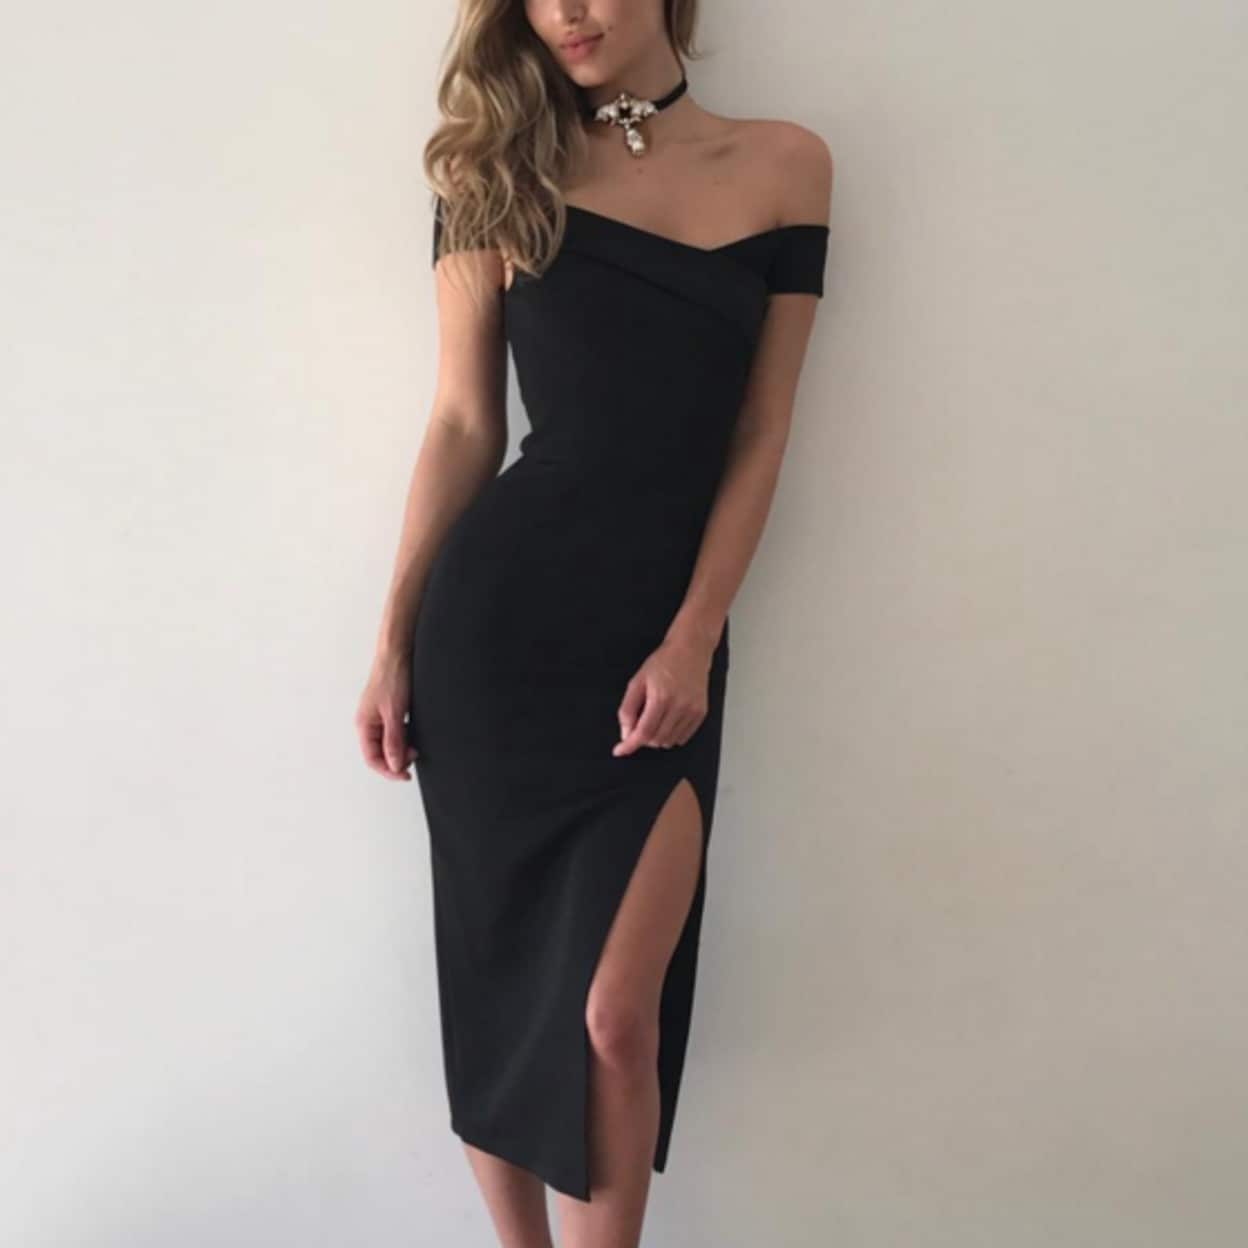 608cb3b3824 Shop Elegant Summer Sexy Women Bodycon Dresses Off Shoulder Side Slit Plus  Size Dress - On Sale - Ships To Canada - Overstock - 23017605